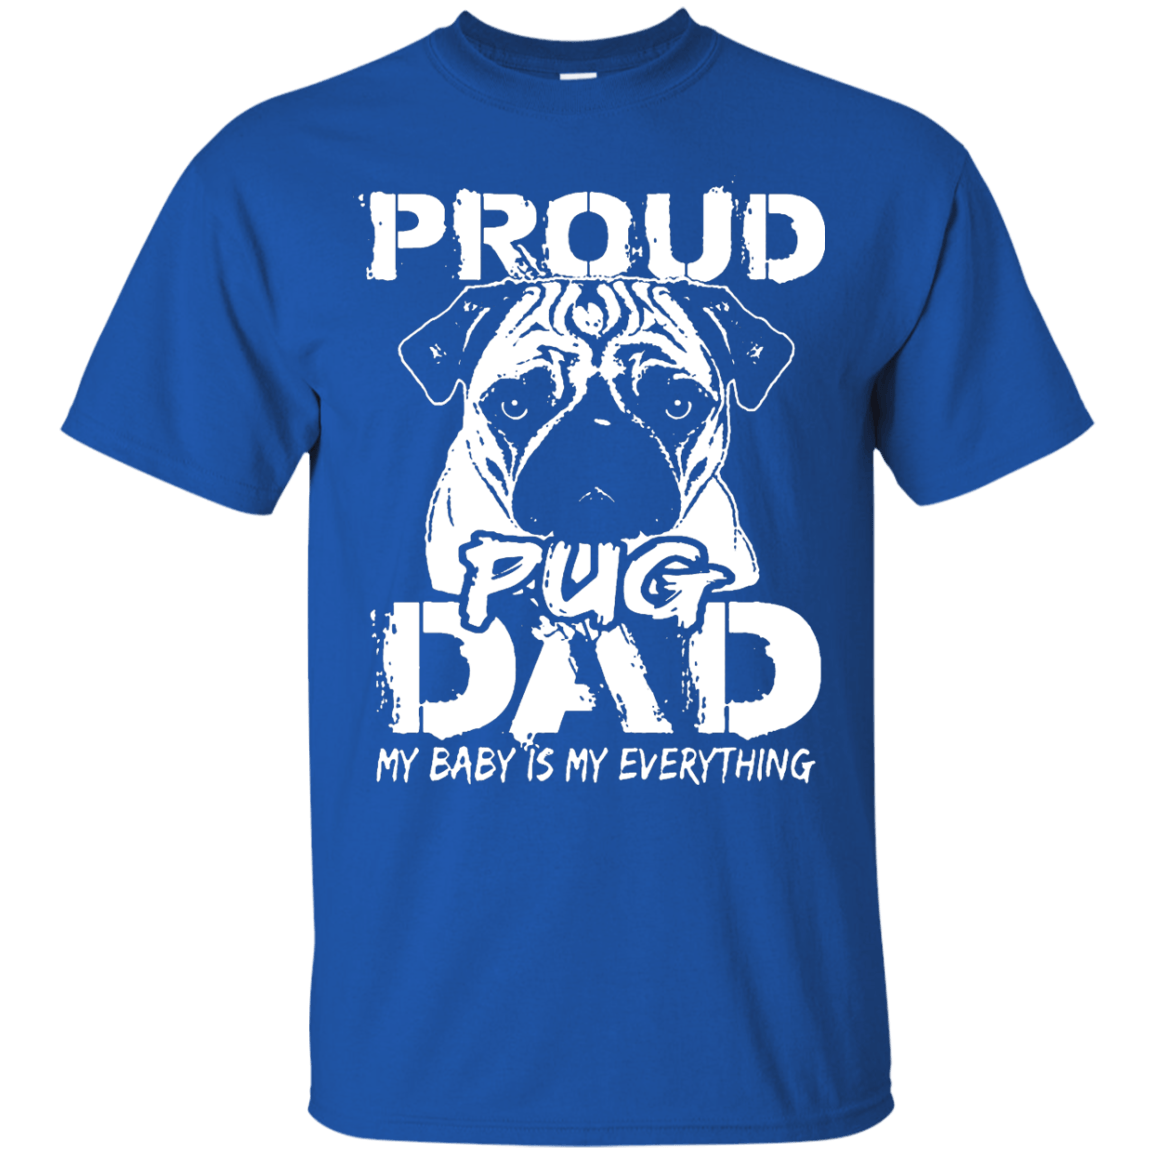 Proud Pug Dad themed T-Shirts and Hoodies for Men and Women